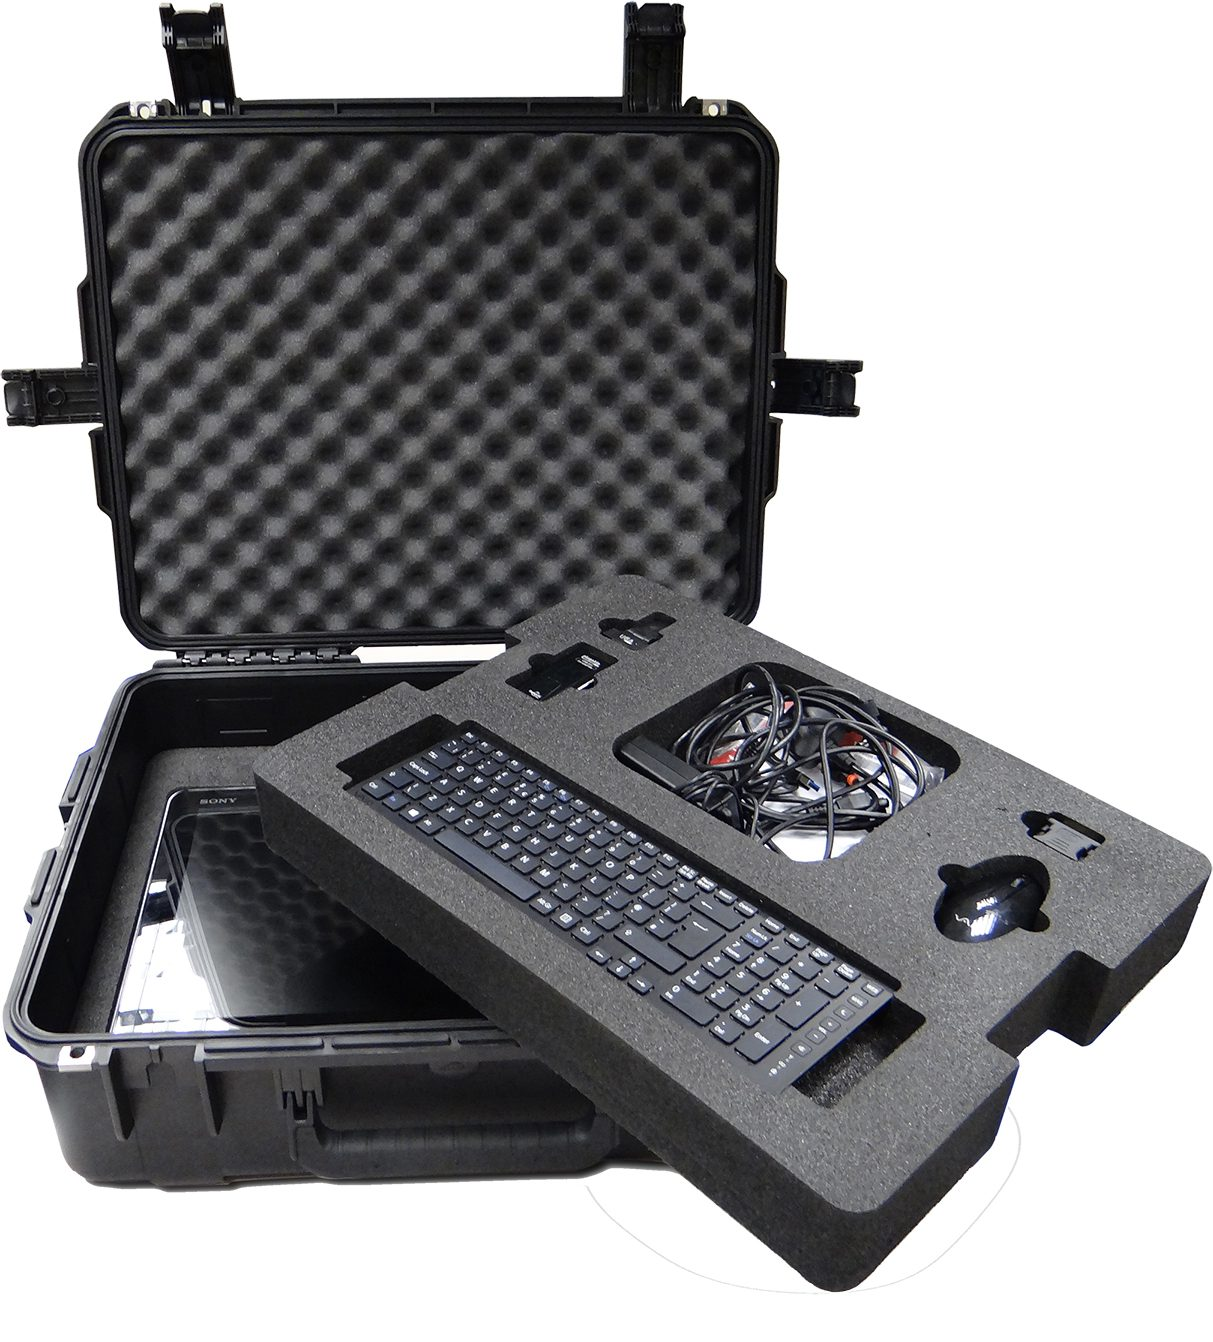 Waterproof Case for Sony Vaio Touchscreen PC